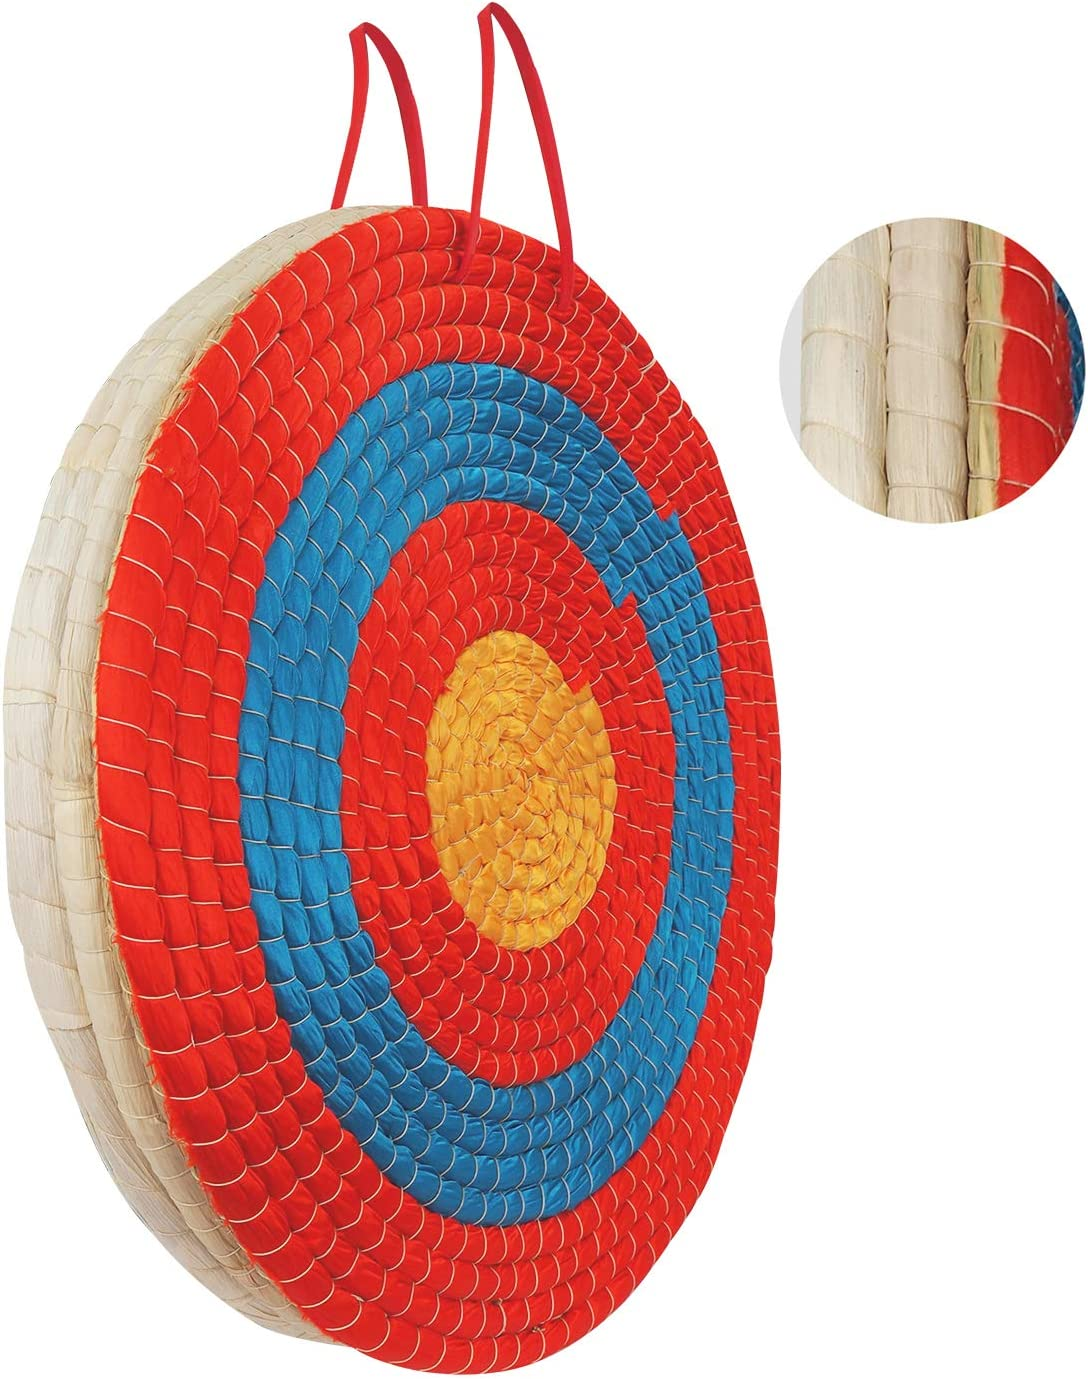 Seektop 20 Inches Archery Targets for Backyard, 3 Layers Traditional Hand-Made Straw Archery Target for Youth Outdoor Hunting Shooting Practice, Arrow Target for Recurve Bow Longbow or Compound Bow : Sports & Outdoors